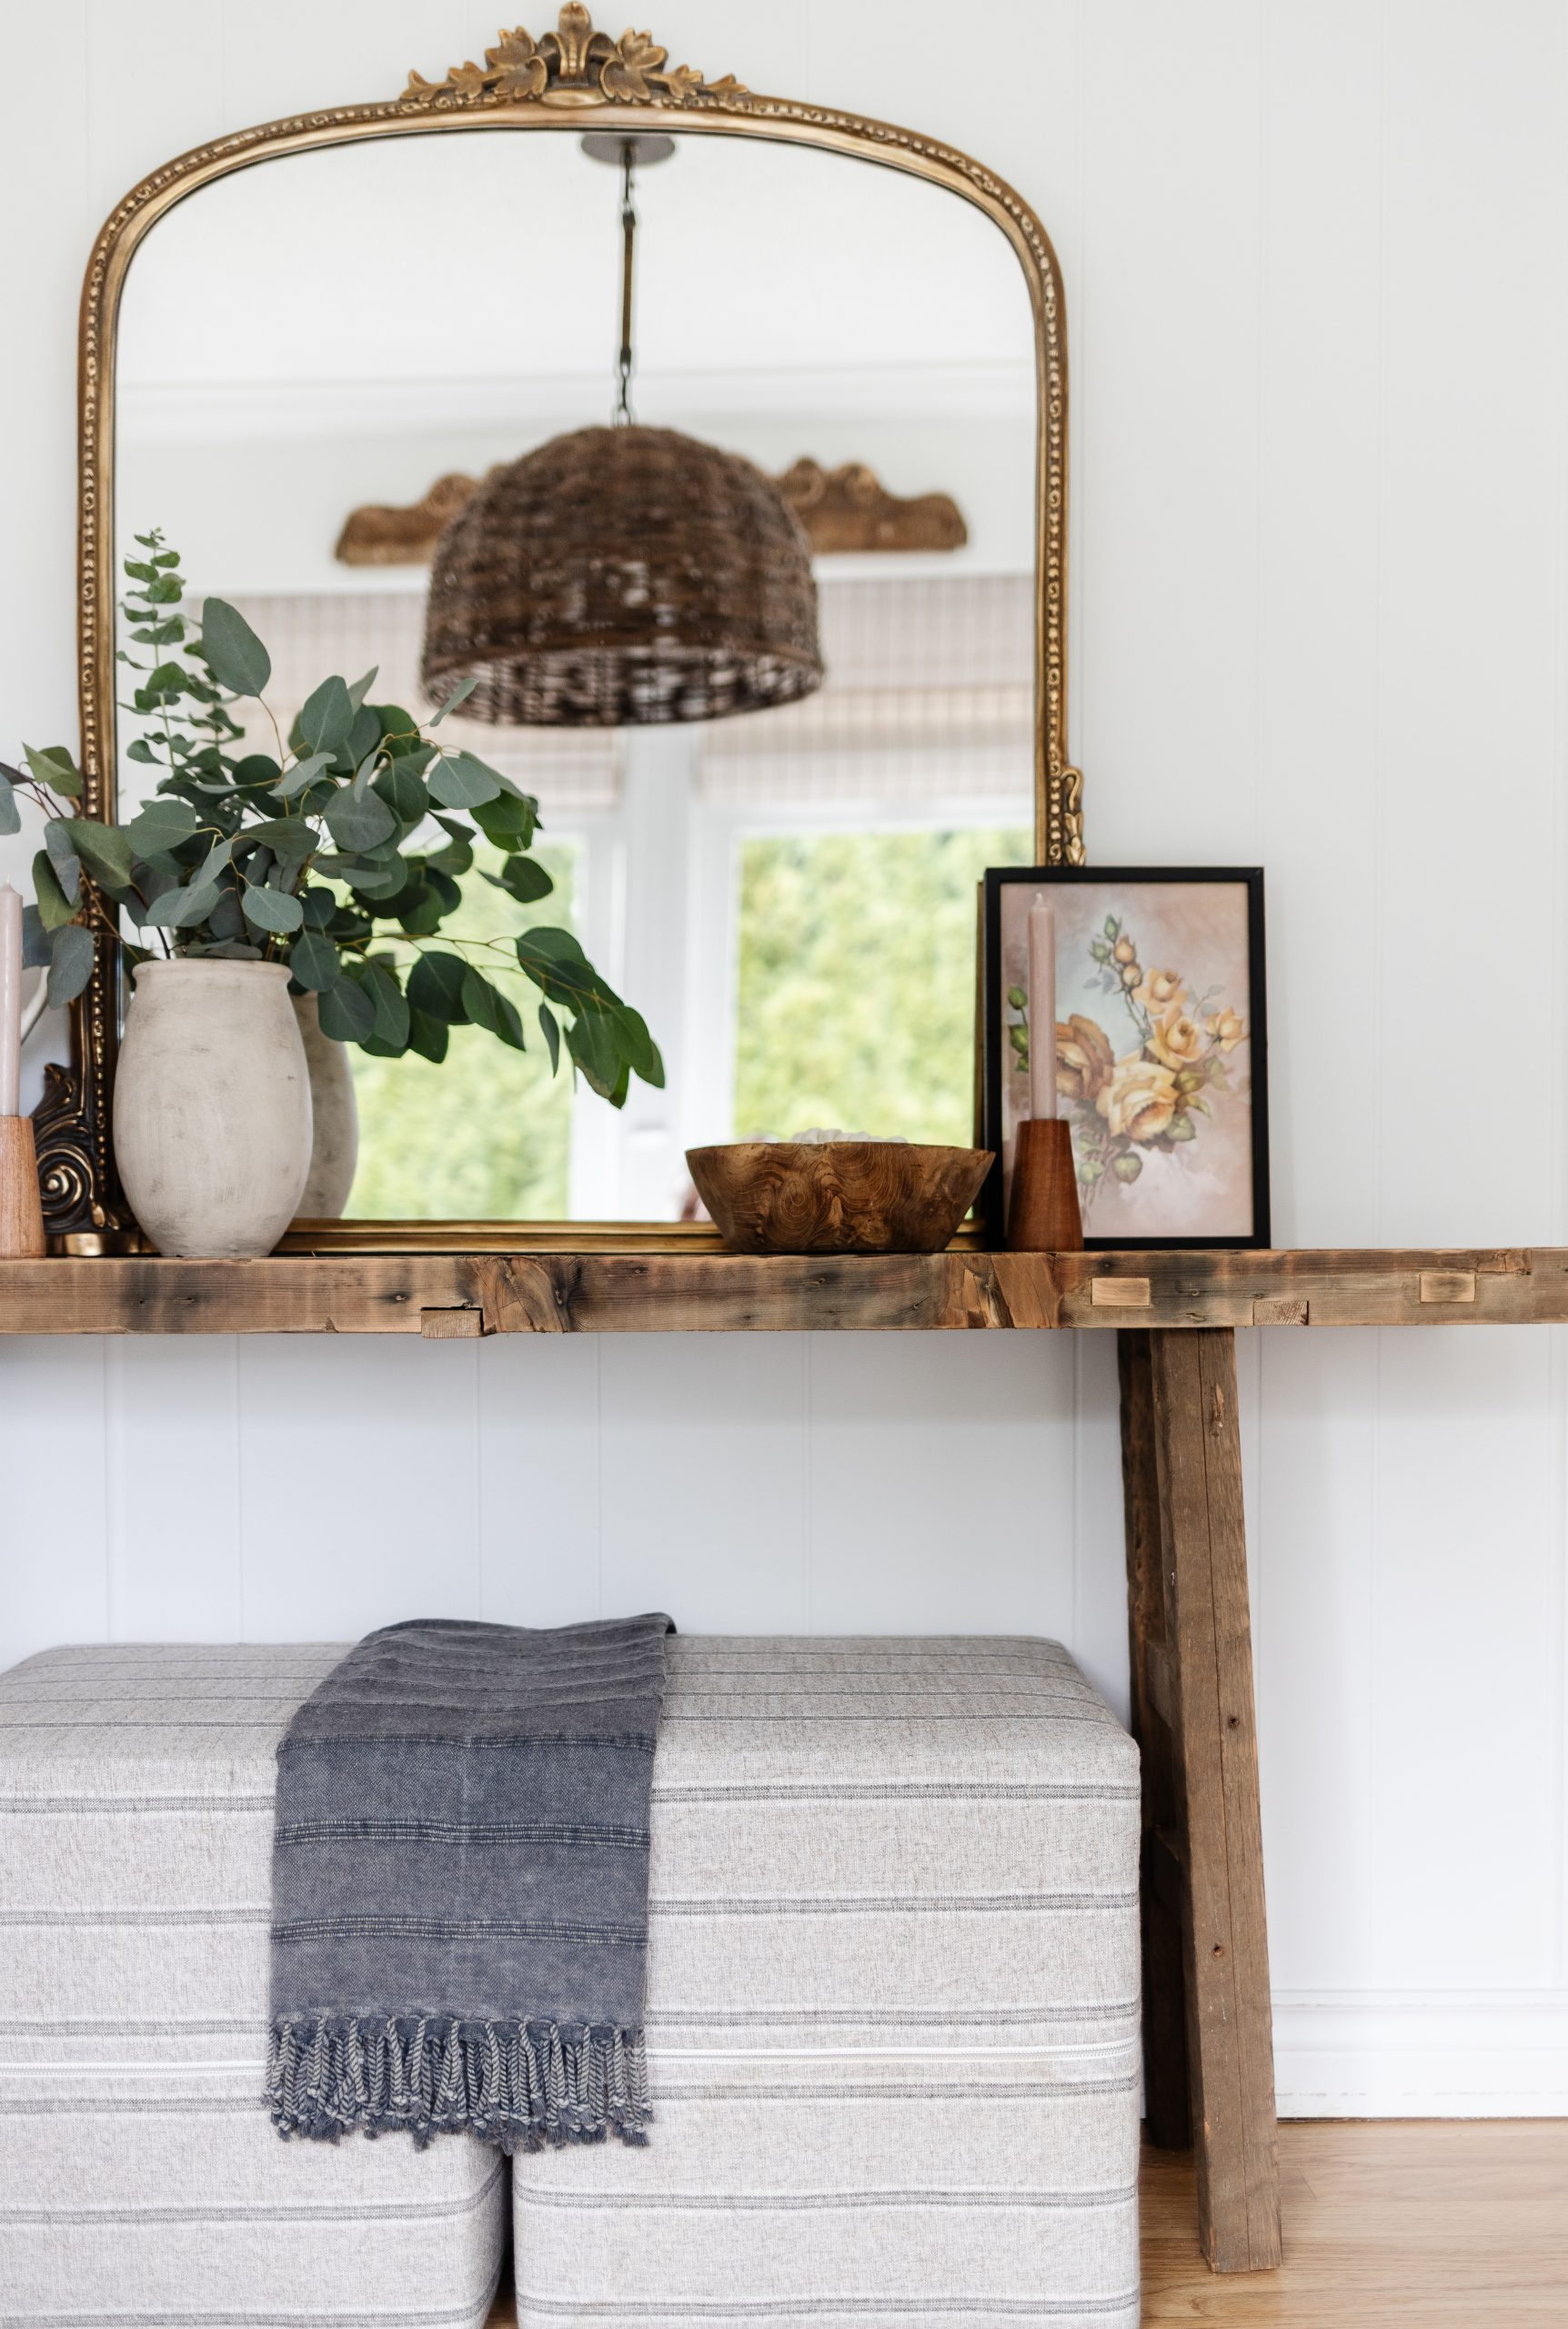 DIY Reclaimed Sofa Table made out of reclaimed wood from a salvage yard for a quarter of the price. This rustic modern sofa table will charm any space.